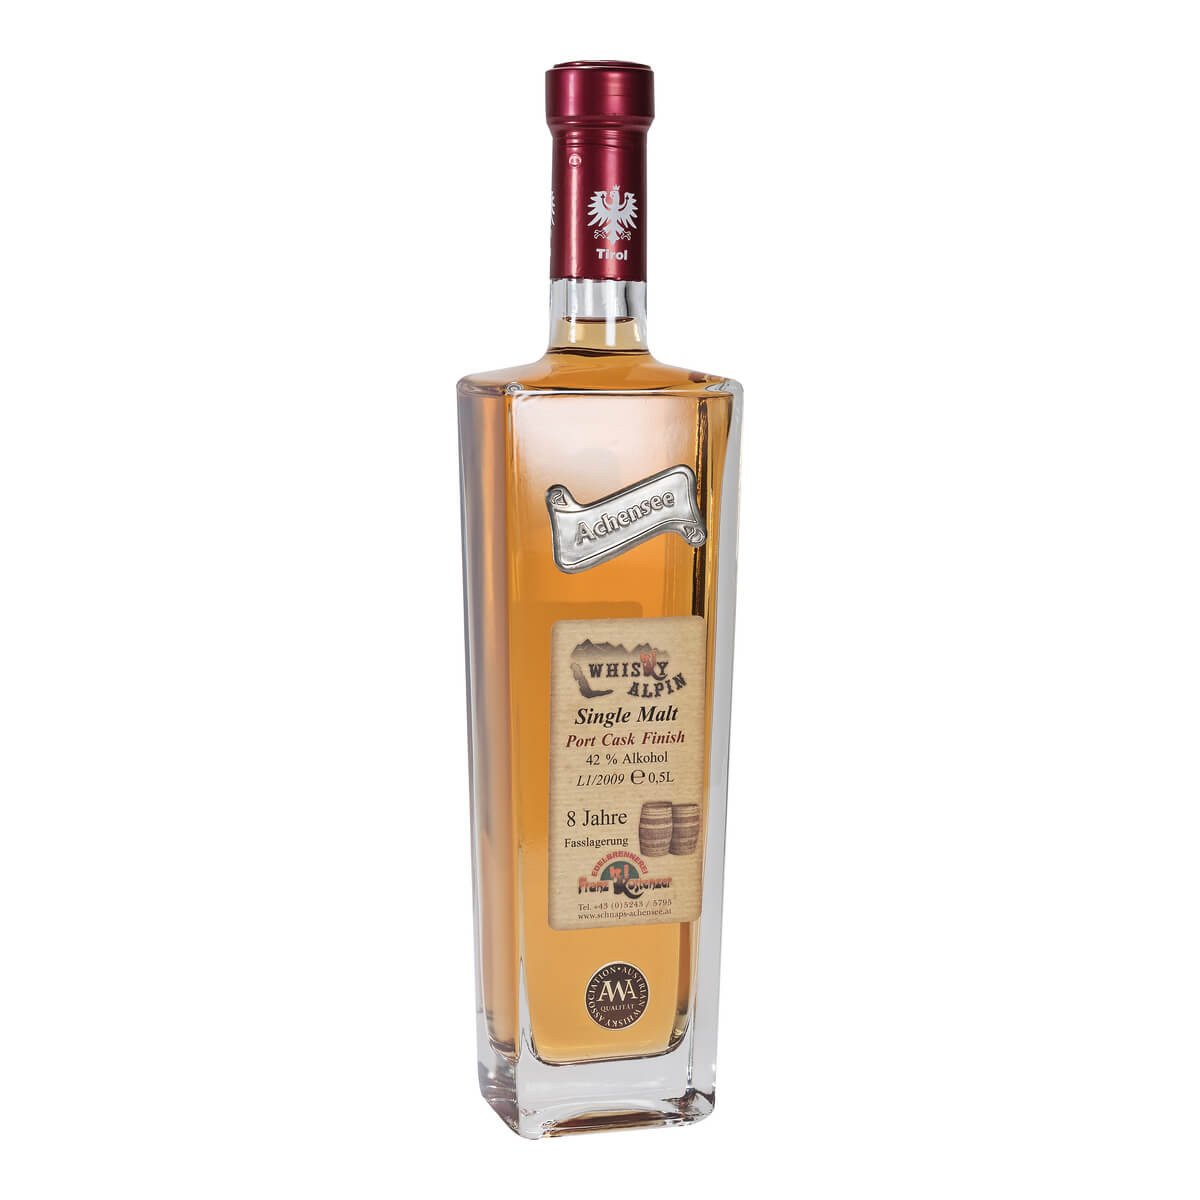 Single Malt Gerste Port Cask Finish